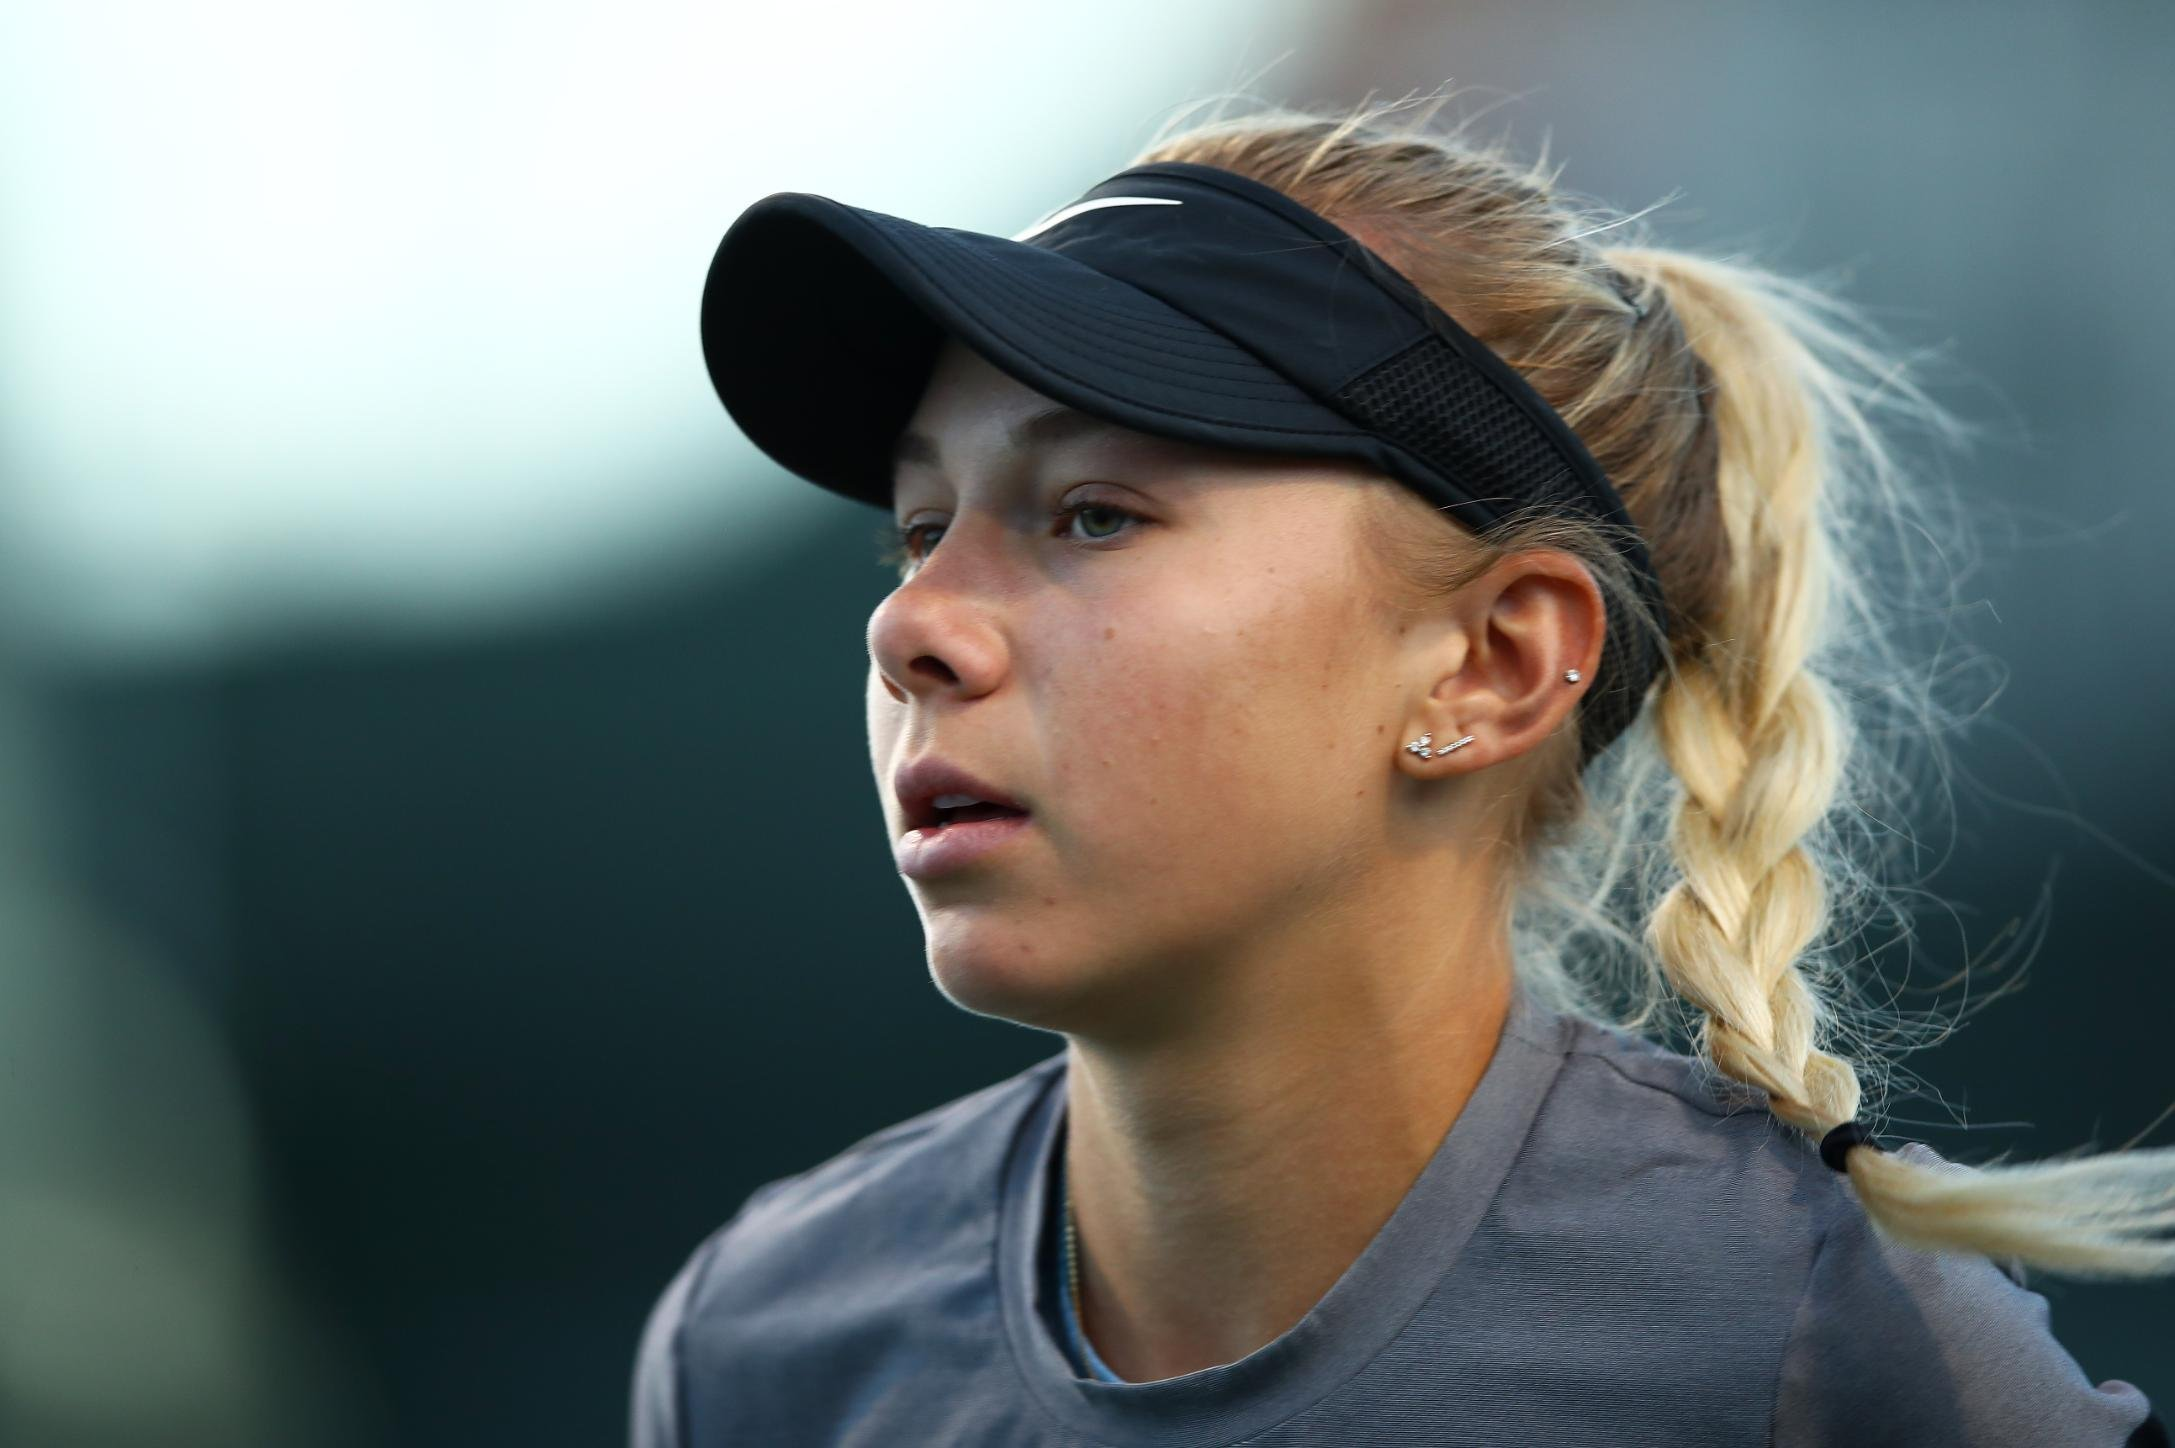 Amanda Anisimova, 17, withdraws from US Open after her father's death